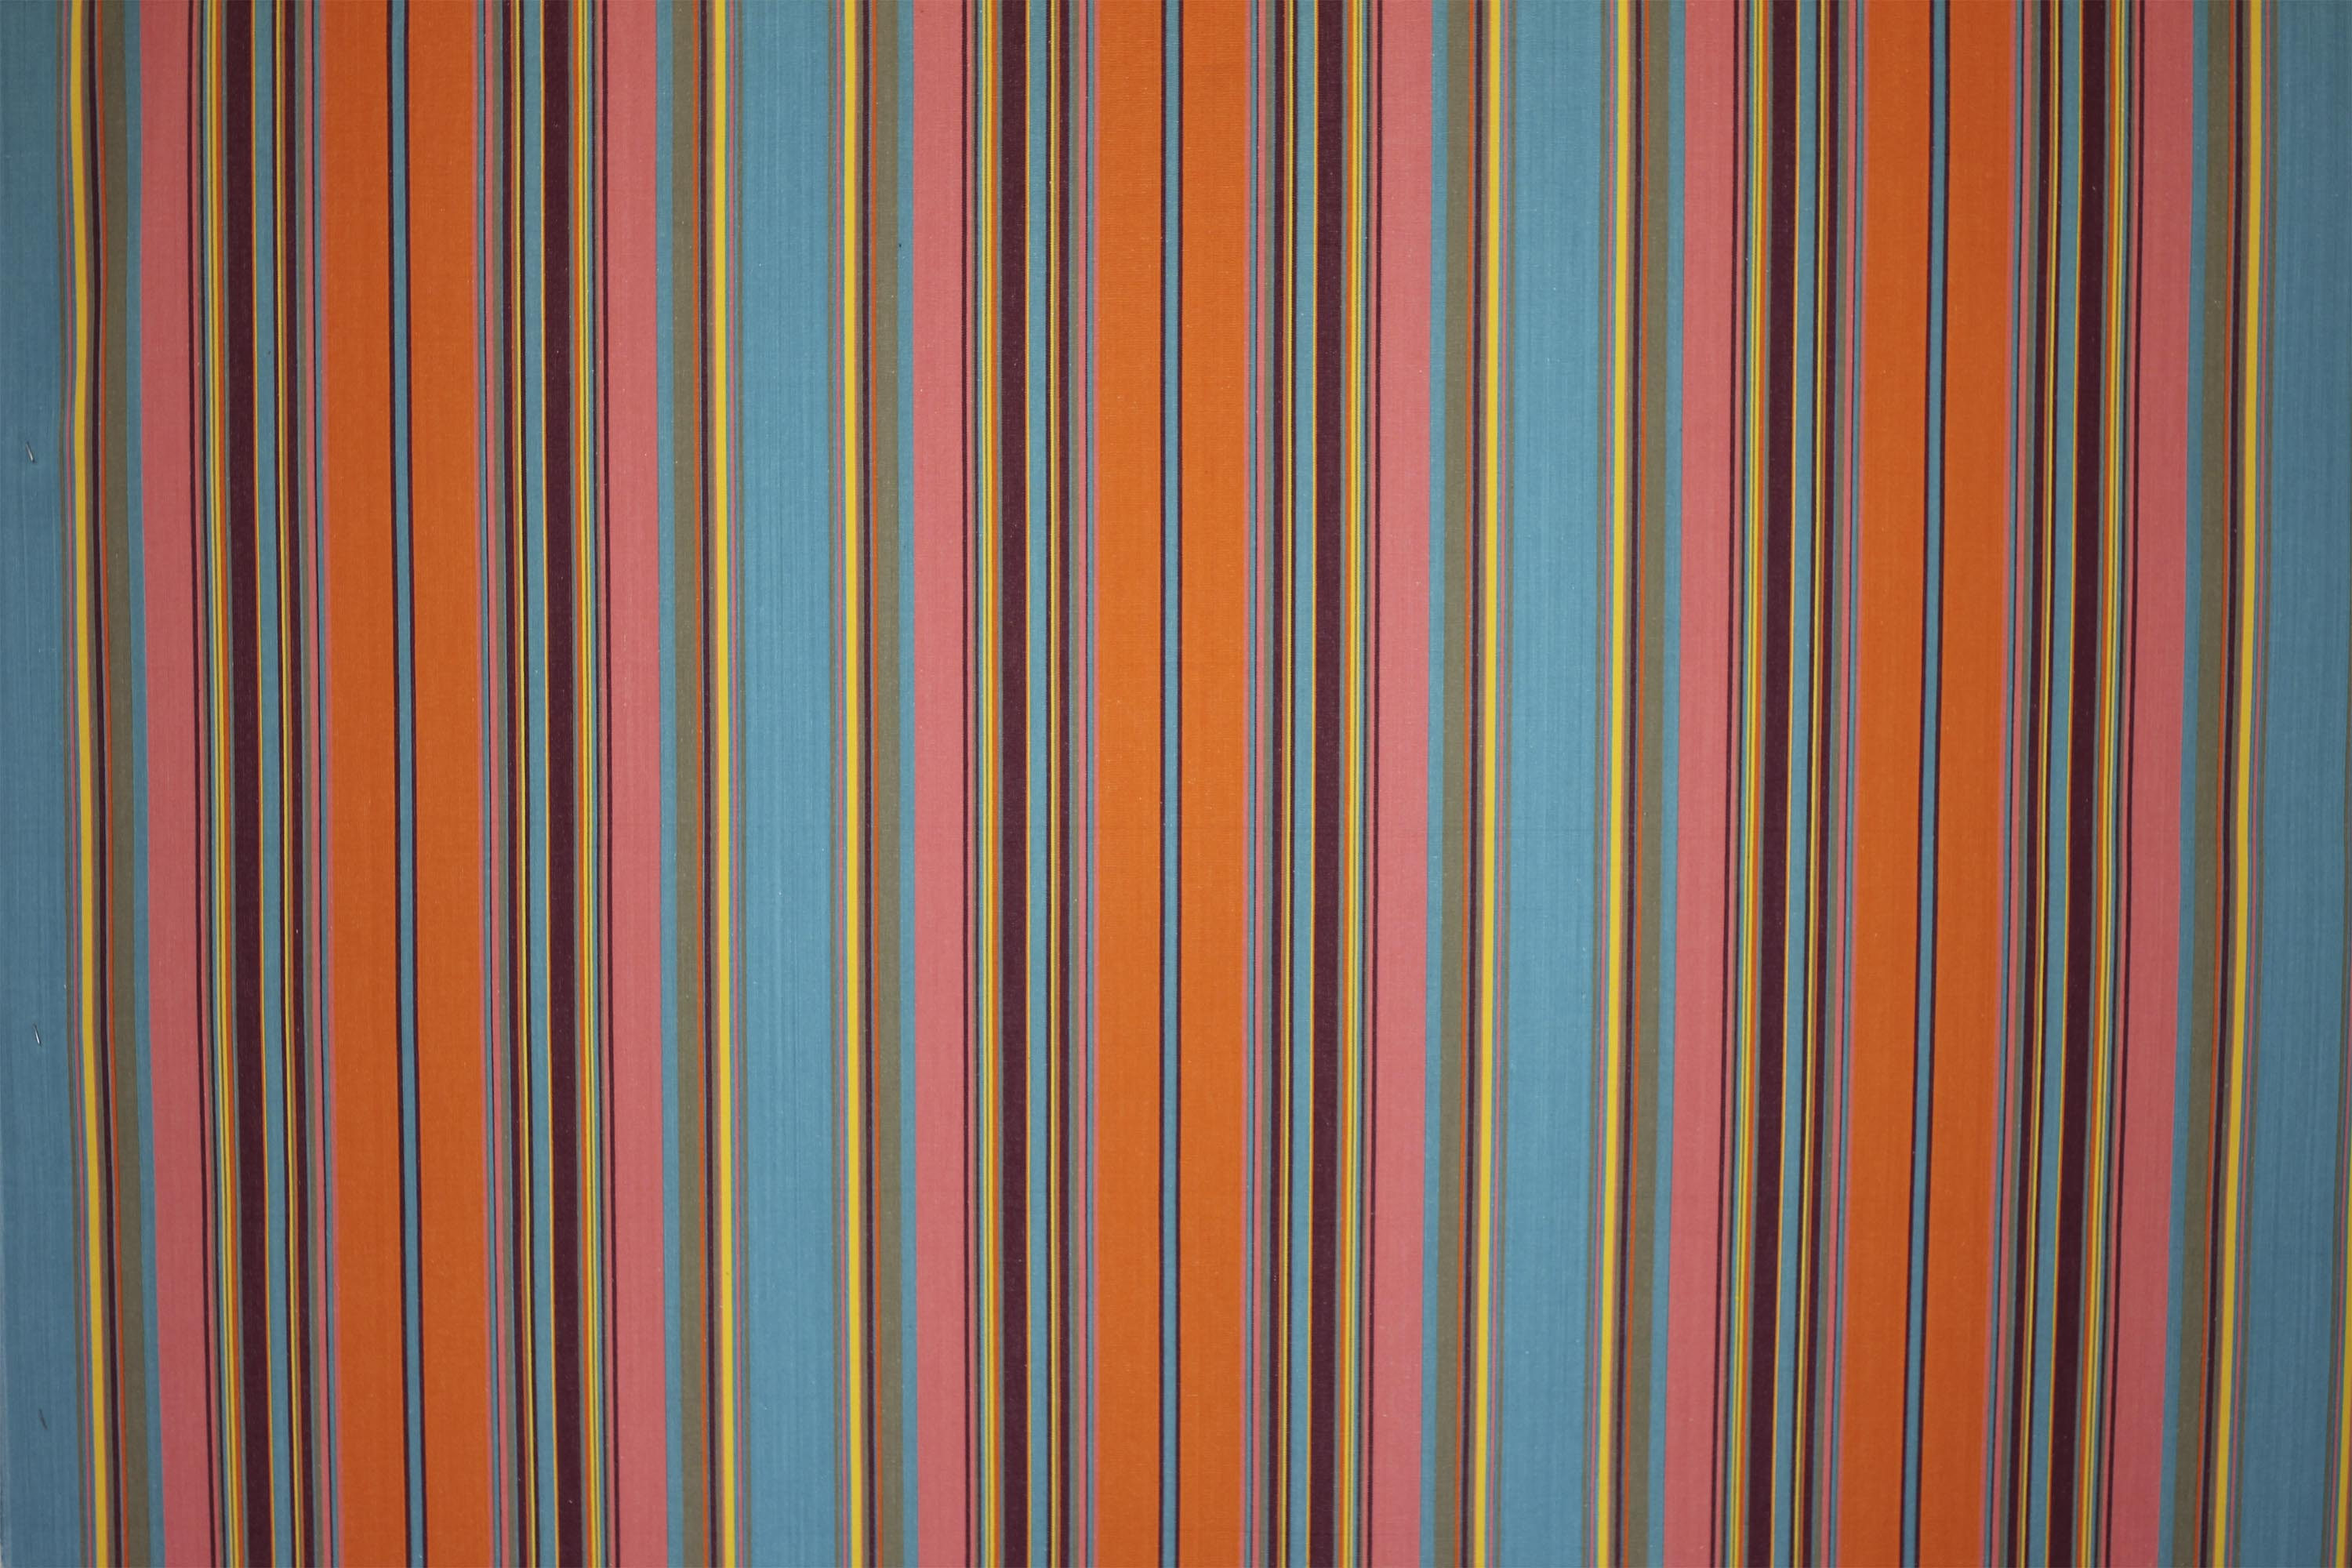 Slalom Turquoise and Salmon Pink Striped Fabric